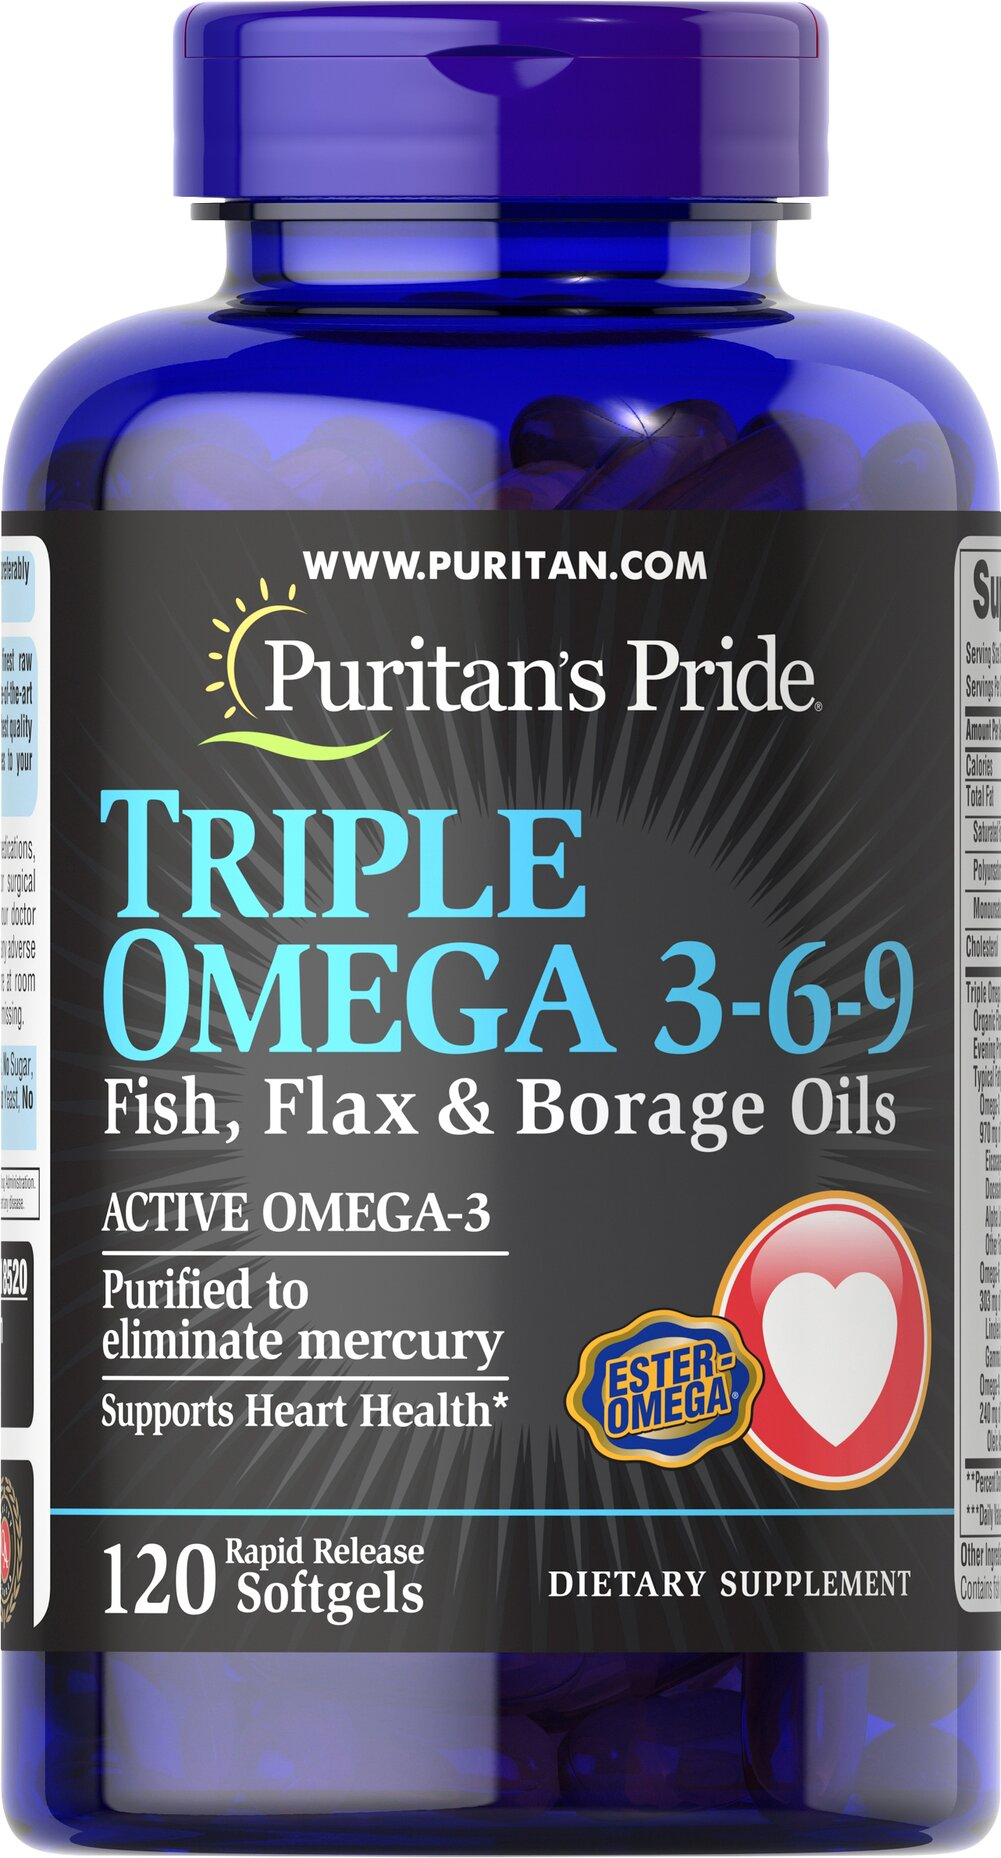 "Omega 3-6-9 with Evening Primrose Oil <p><strong>Purified to Eliminate Mercury</strong></p><p>Contains Omega-3, Omega-6 and Omega-9 – the ""good"" fats important for cellular, heart and metabolic health.** </p>TRIPLE OMEGA 3-6-9 contains <em>a proprietary blend of essential oils, including Flaxseed Oil, Fish Oil, Evening Primrose Oil and Borage Oil, and is a good source of Vitamin E.</em><p></p> 120 Softgels  $16.99"